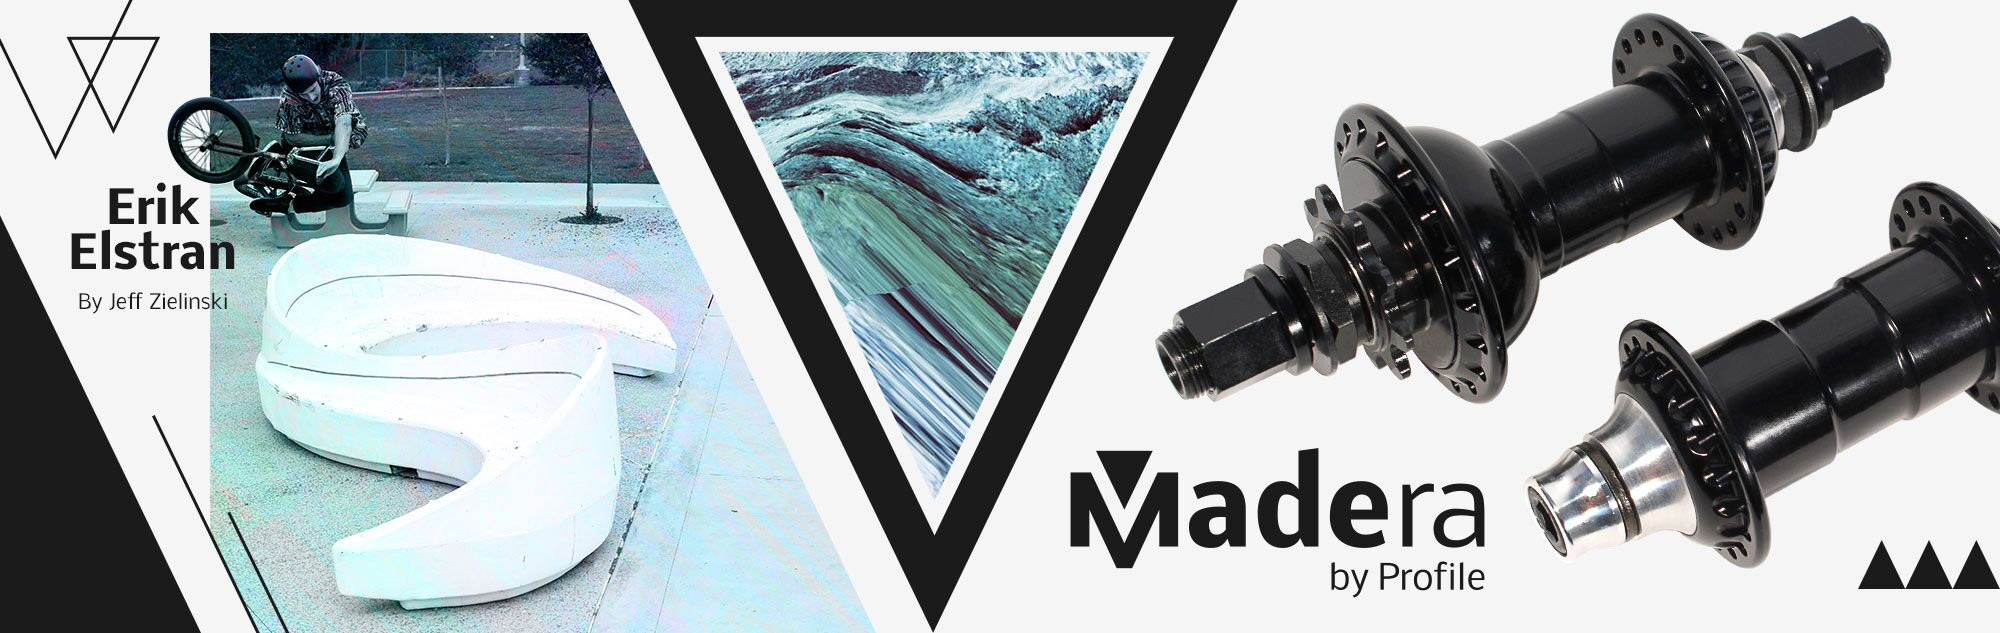 Madera BMX Products at Albe's BMX Online